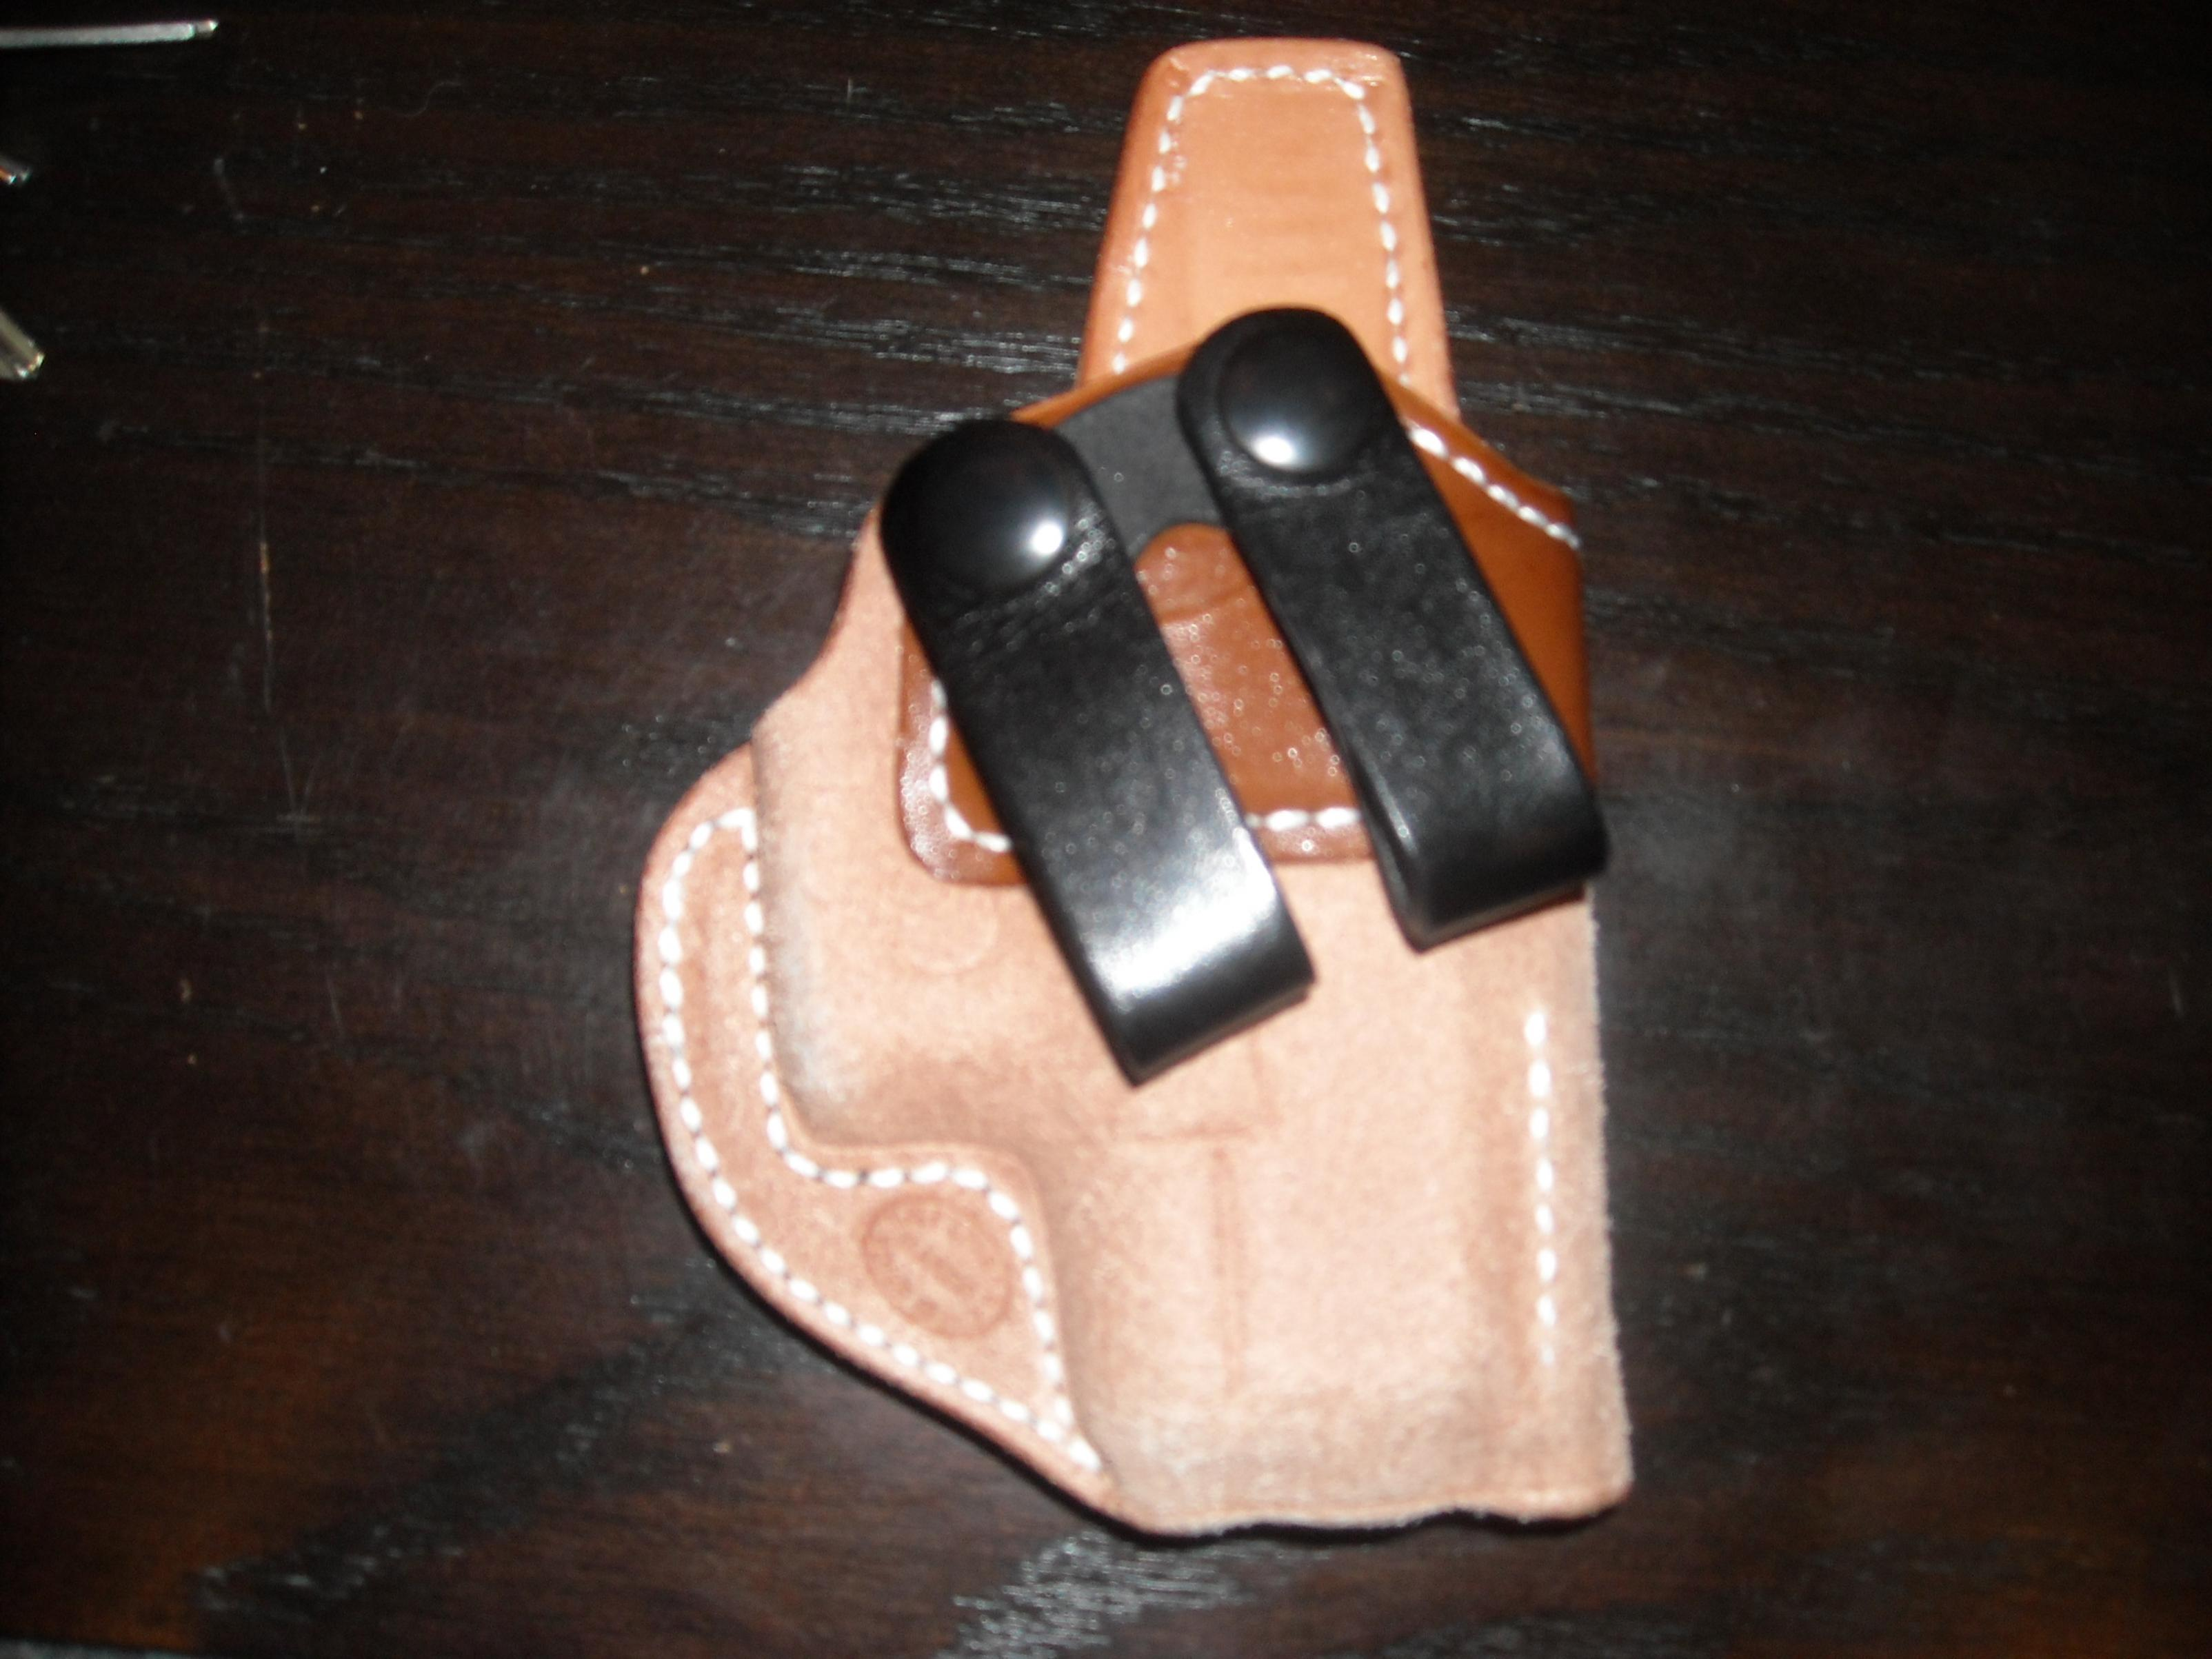 Walther P99 IWB Holster-008.jpg